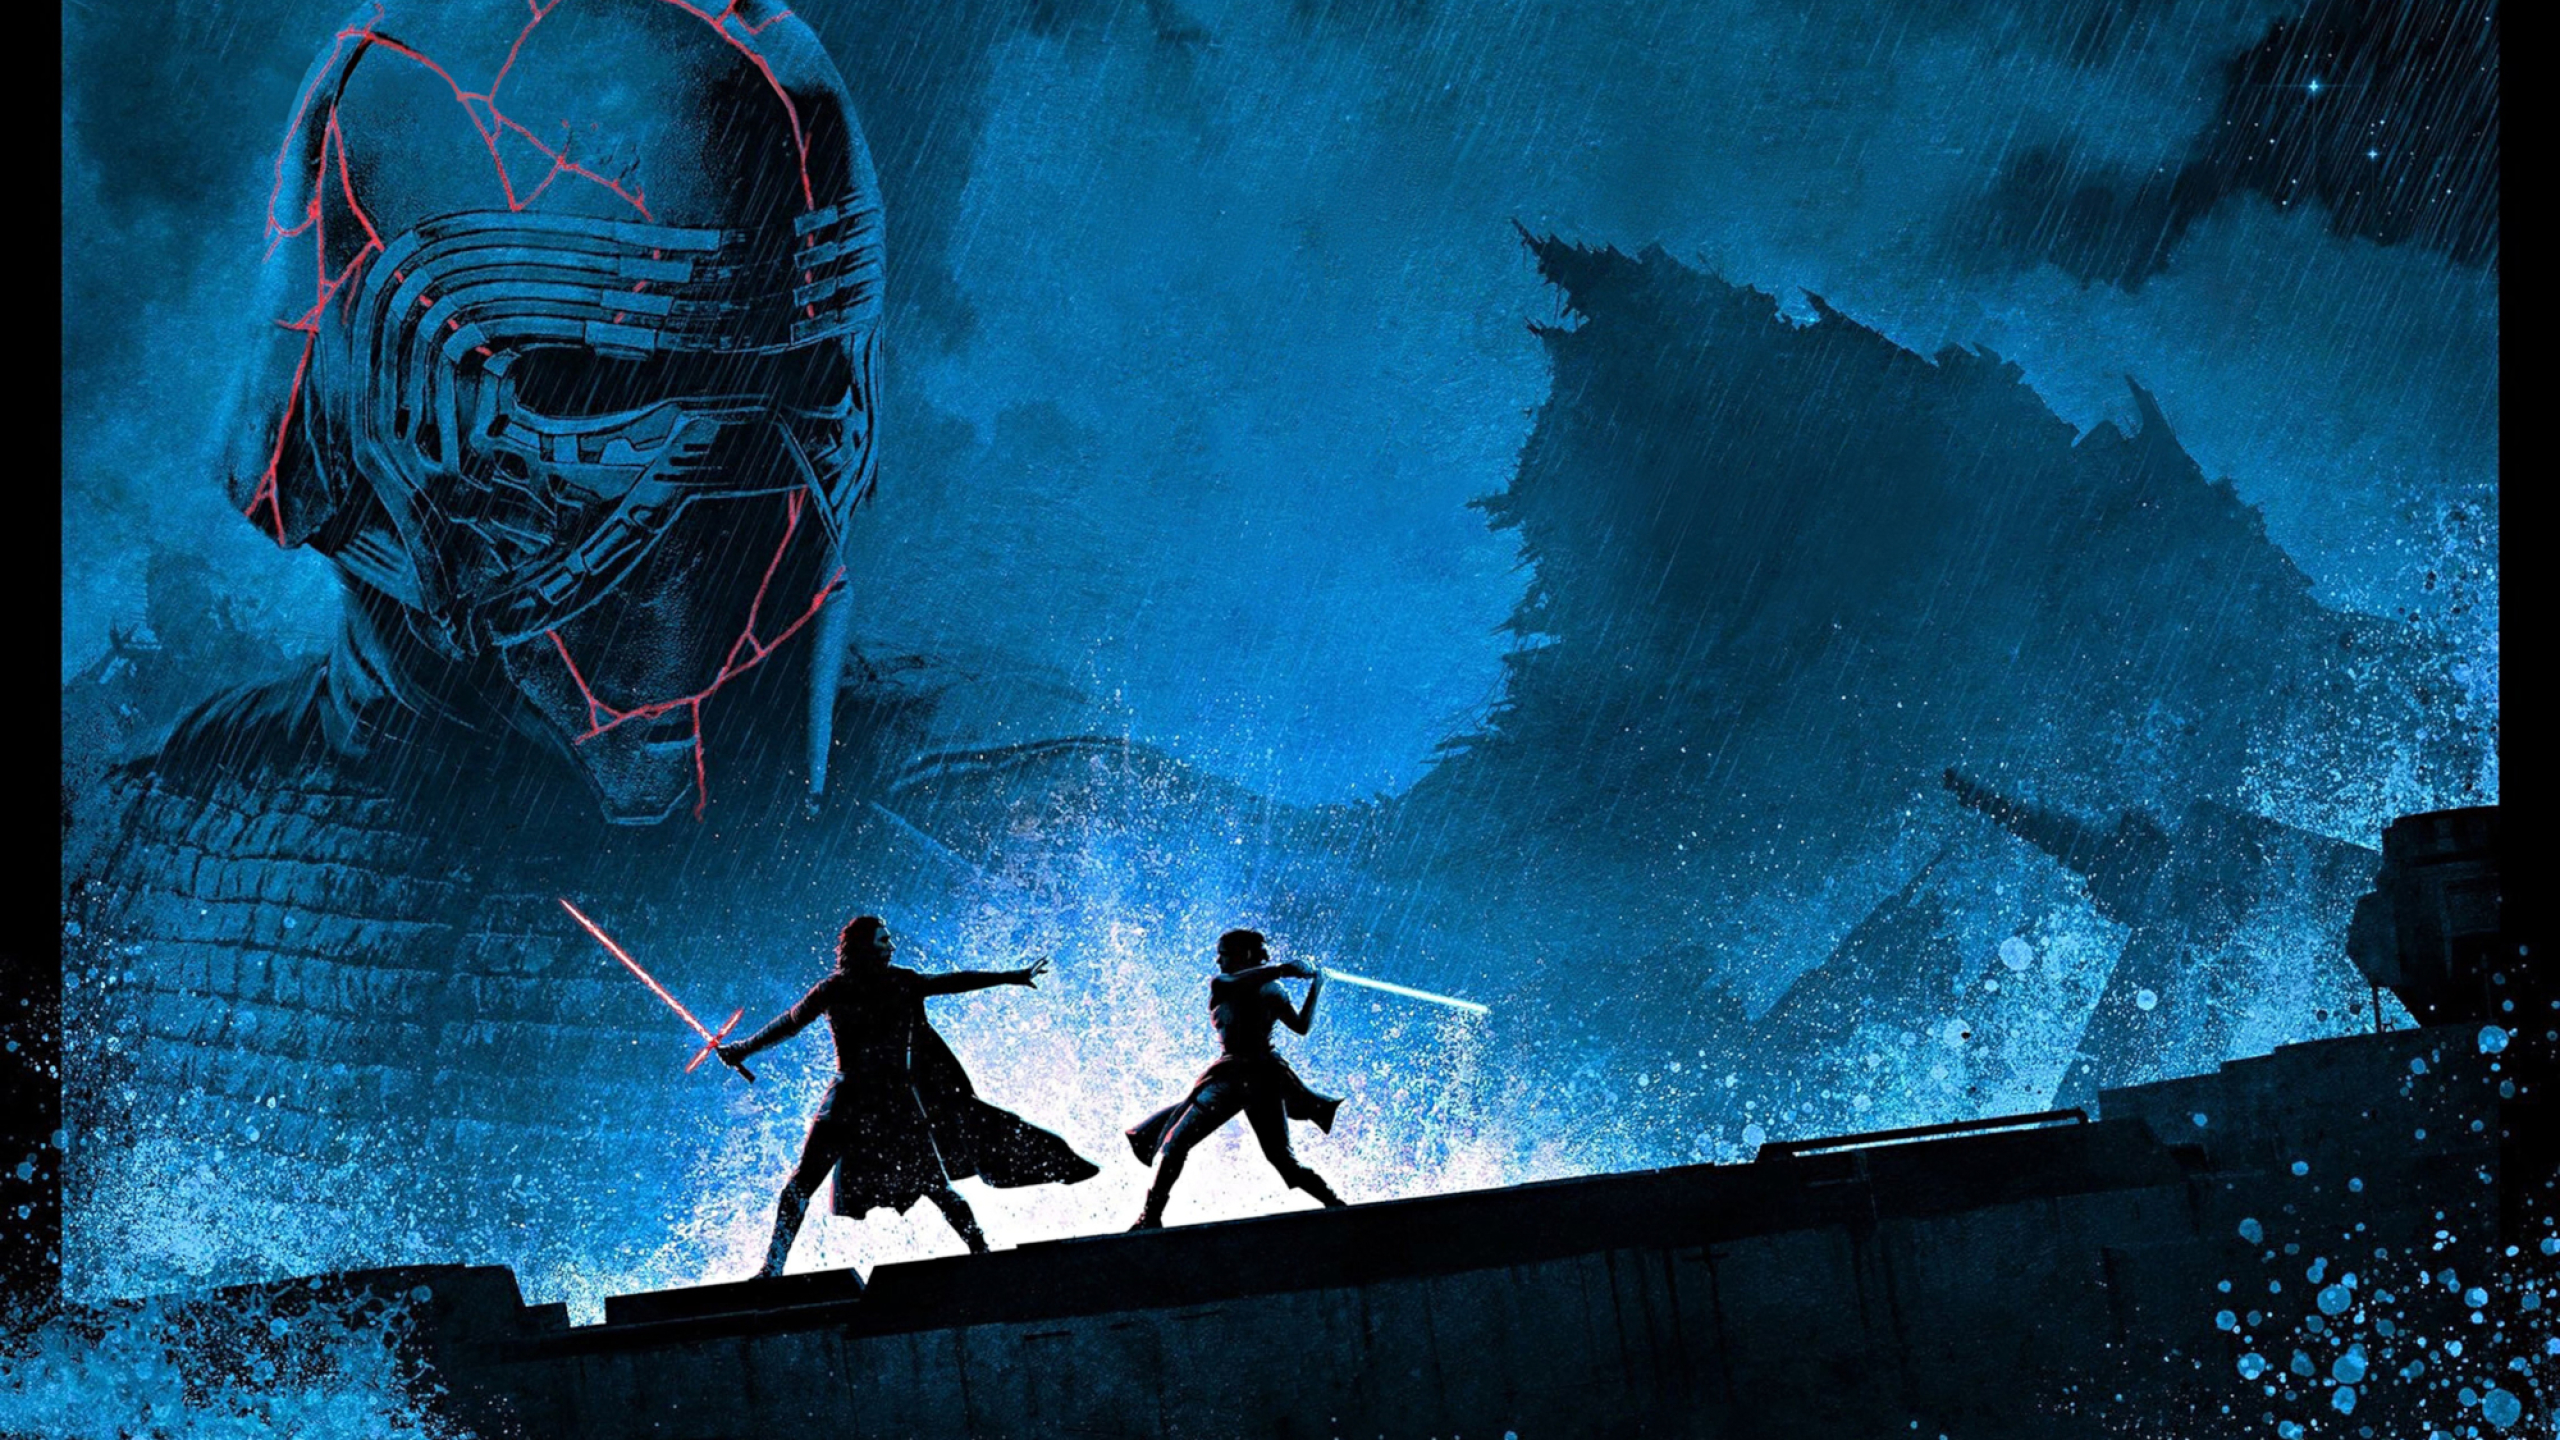 2560x1440 Kylo Ren Vs Rey Star Wars 1440p Resolution Wallpaper Hd Movies 4k Wallpapers Images Photos And Background